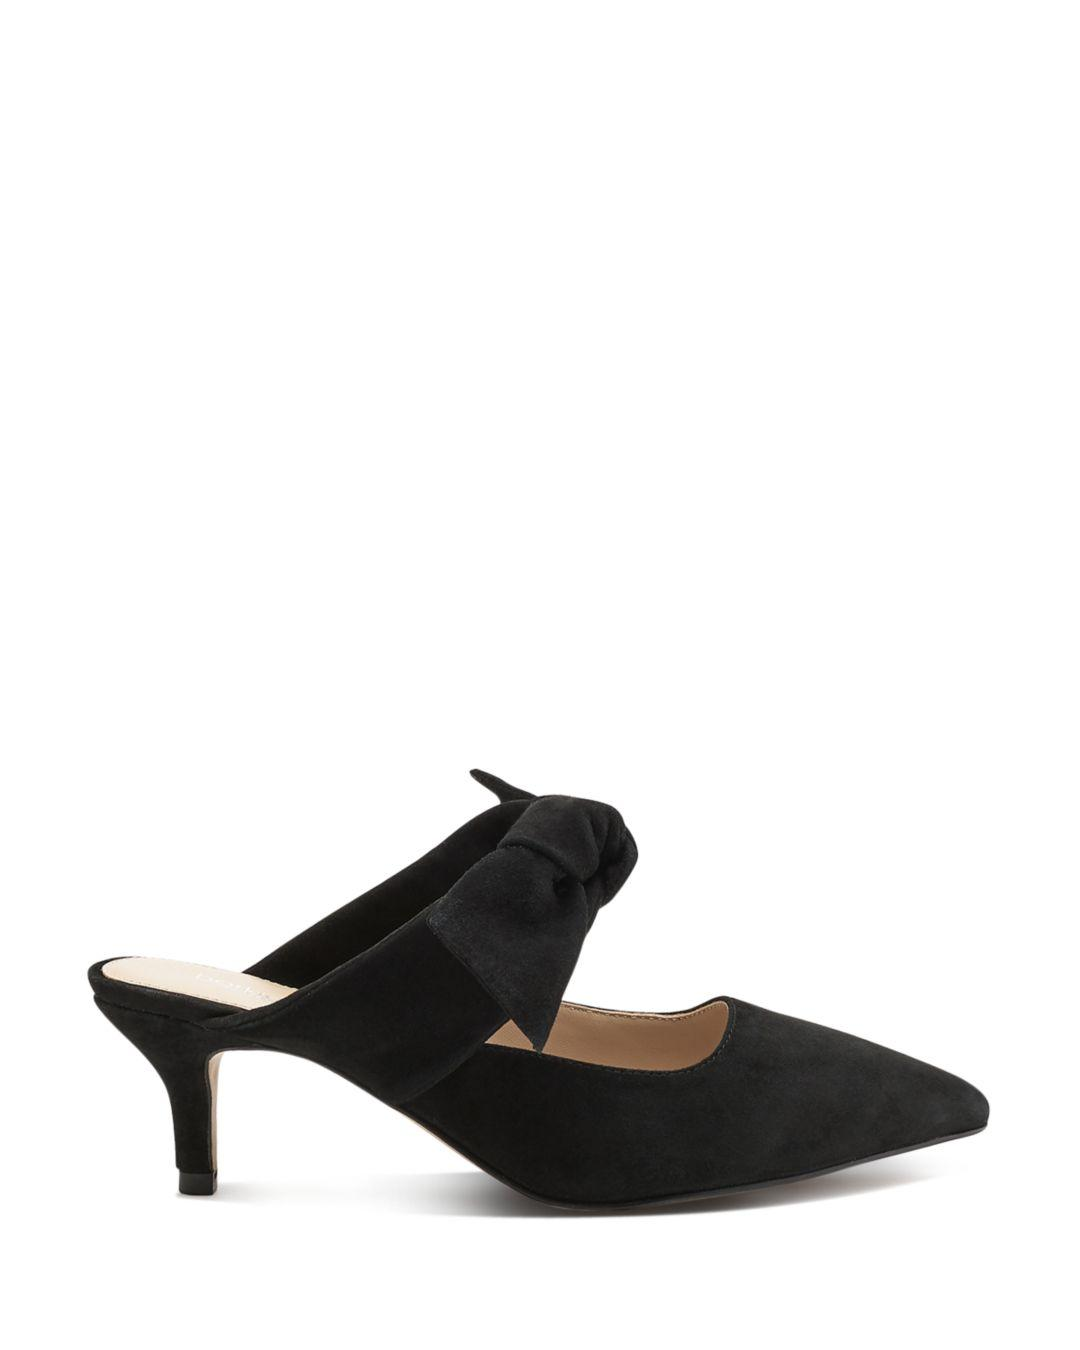 d5be8777cf Botkier Women's Pina Bow - Accented Suede Kitten Heel Mules in Black - Lyst